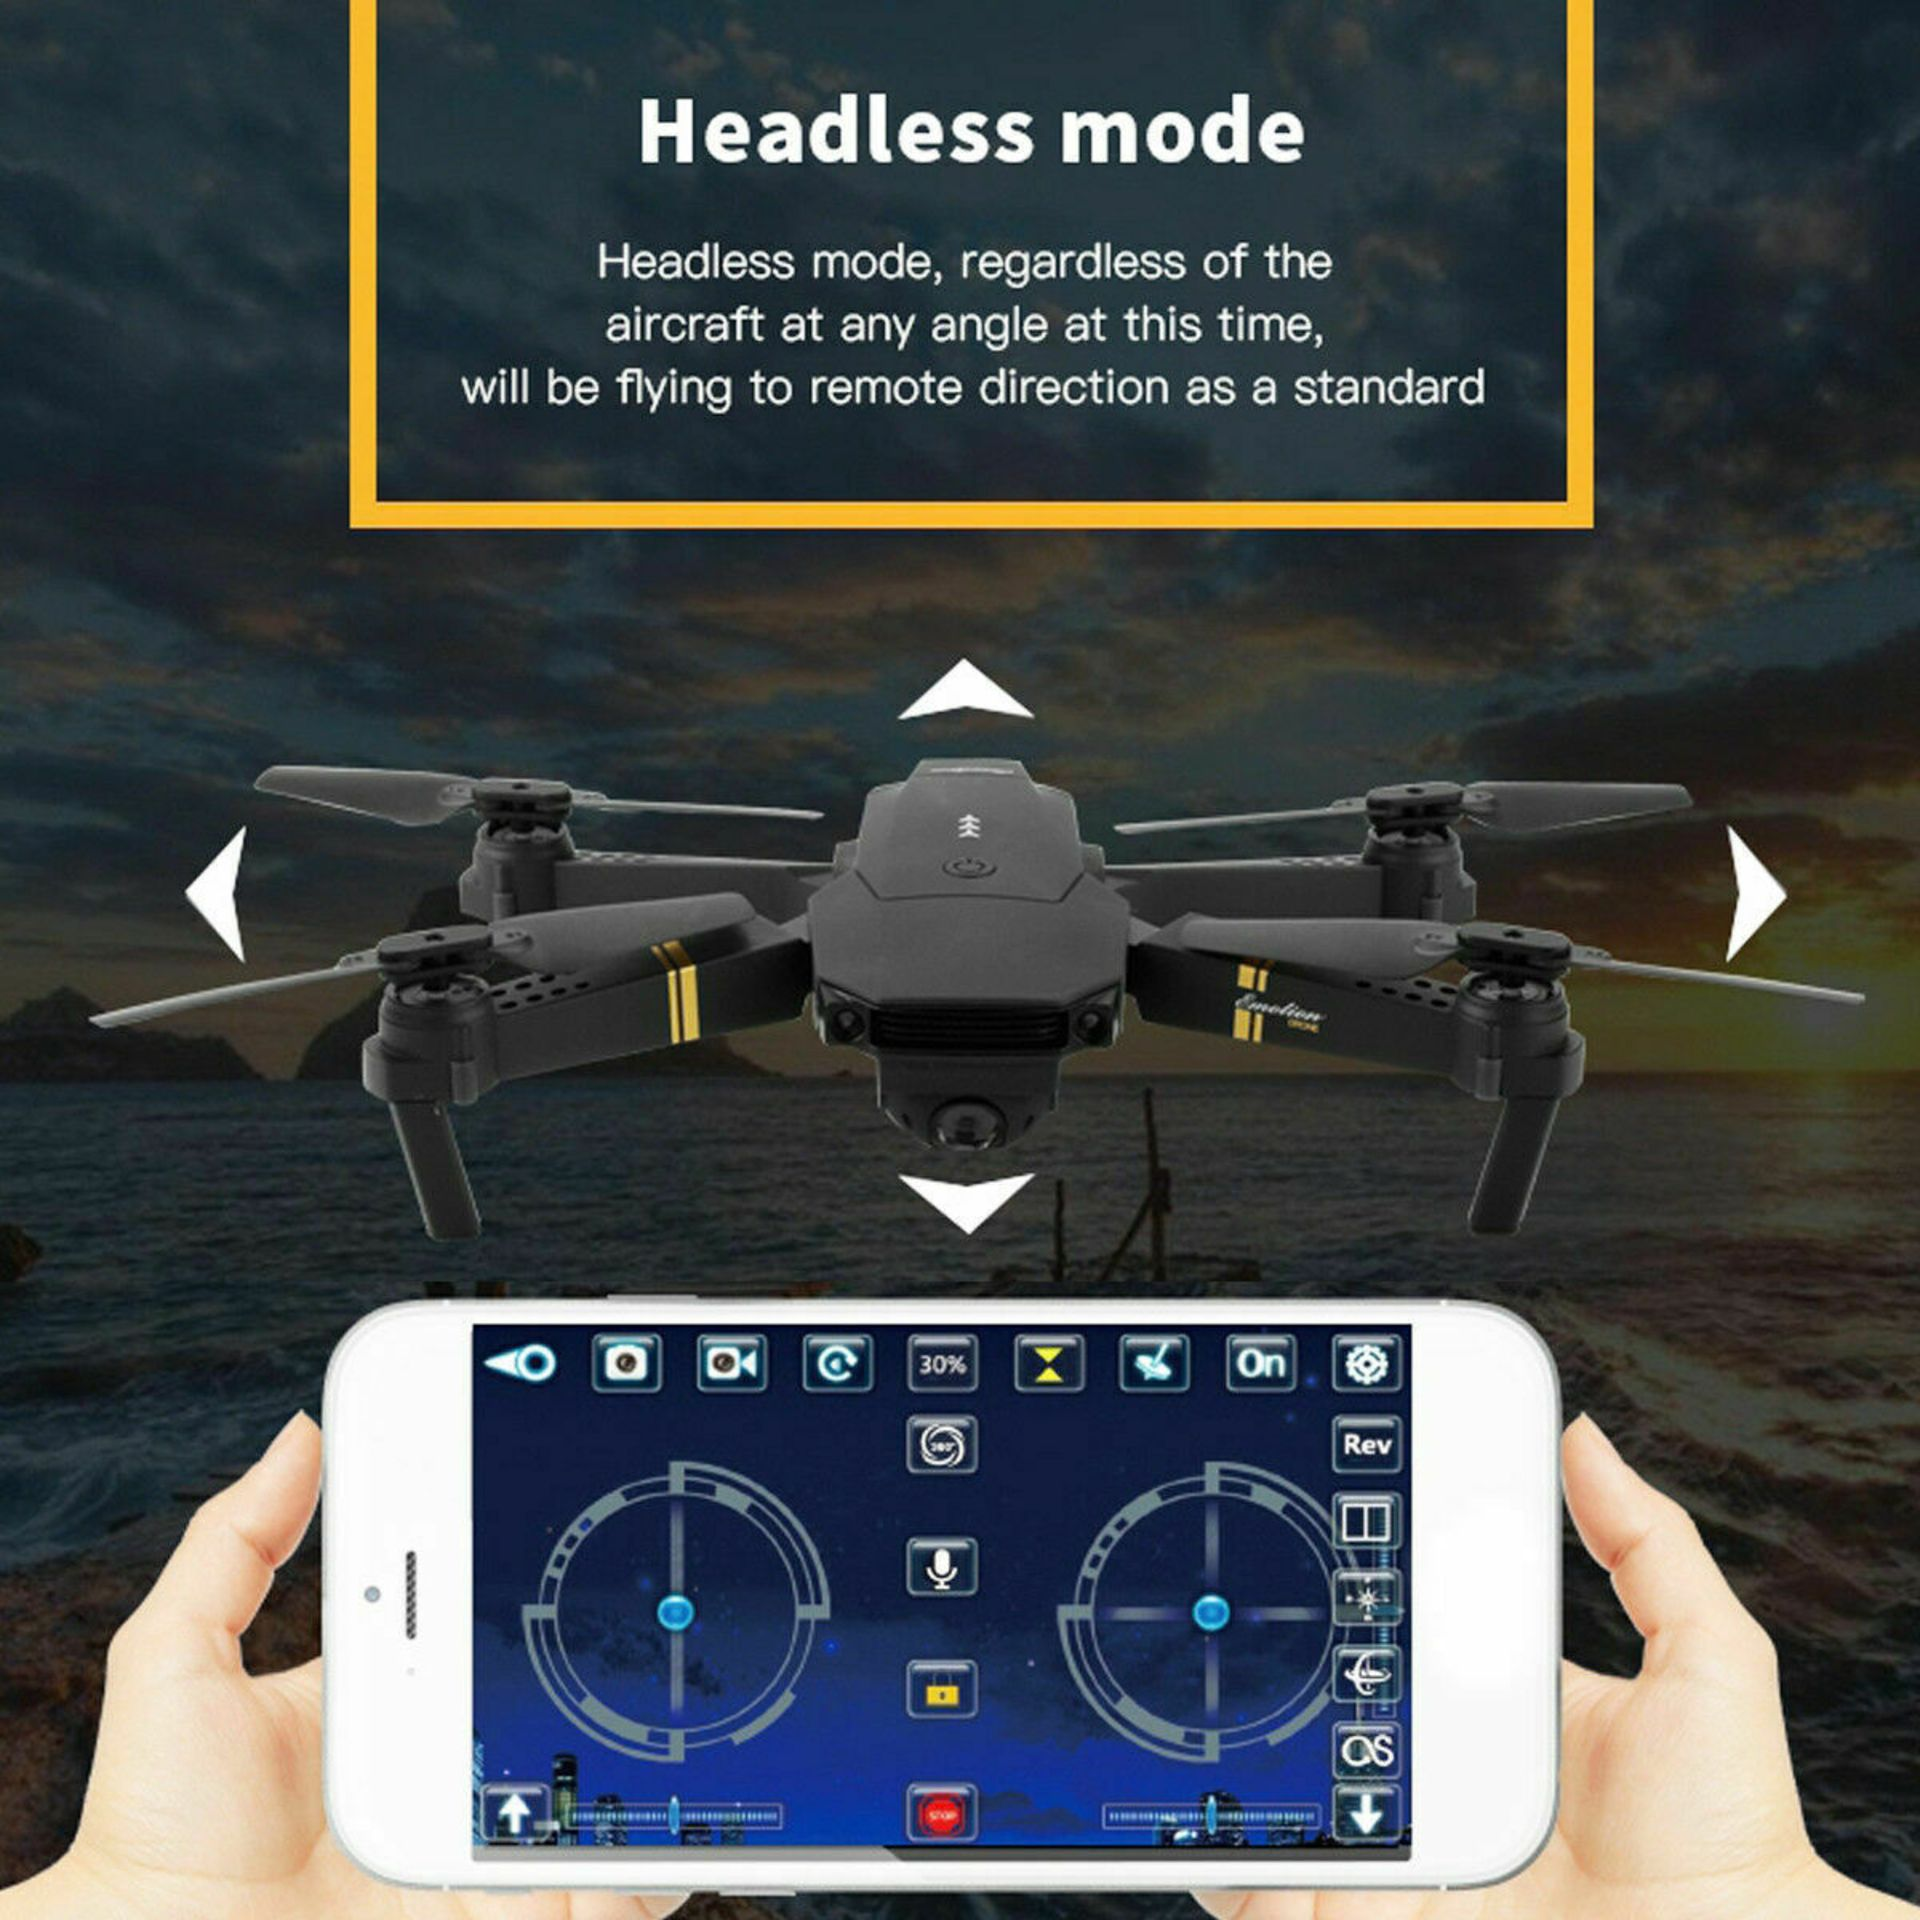 NEW & UNUSED DRONE X PRO WIFI FPV 1080P HD CAMERA FOLDABLE RC QUADCOPTER + BAG *PLUS VAT* - Image 11 of 12